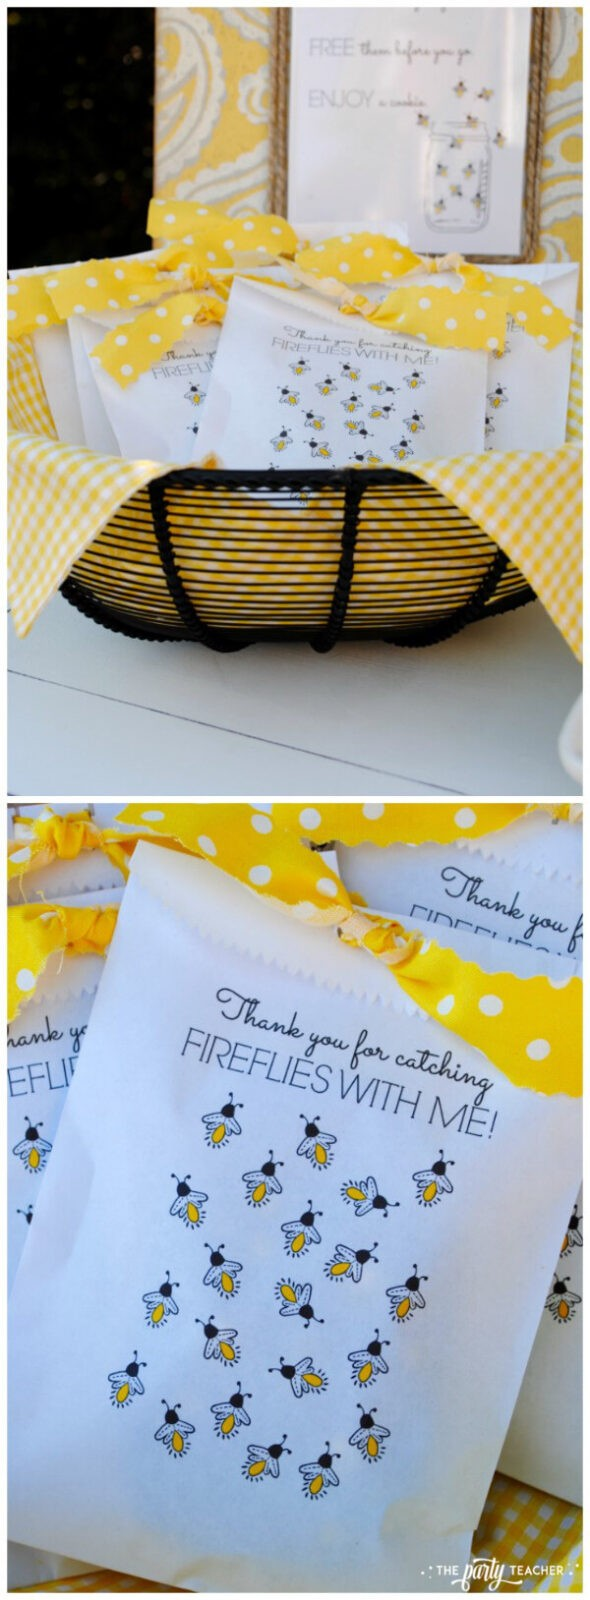 How to throw a Firefly Catching Party by The Party Teacher - party favors 2